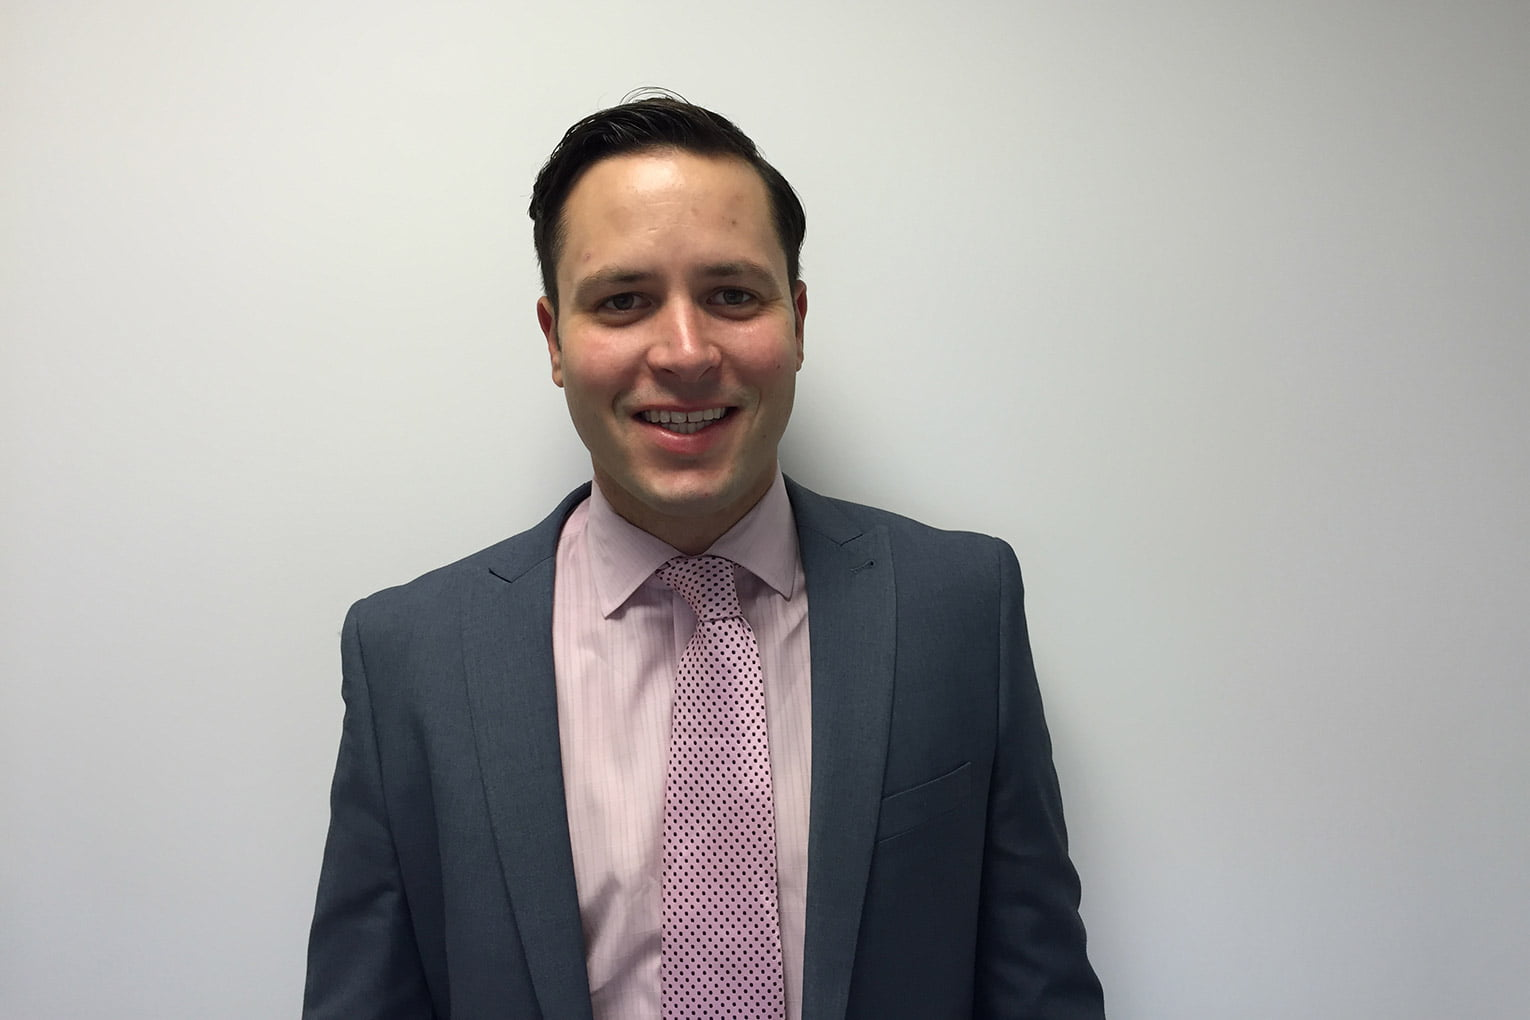 Best Buy Private Auction >> Shawbrook hires London development manager - BestAdvice